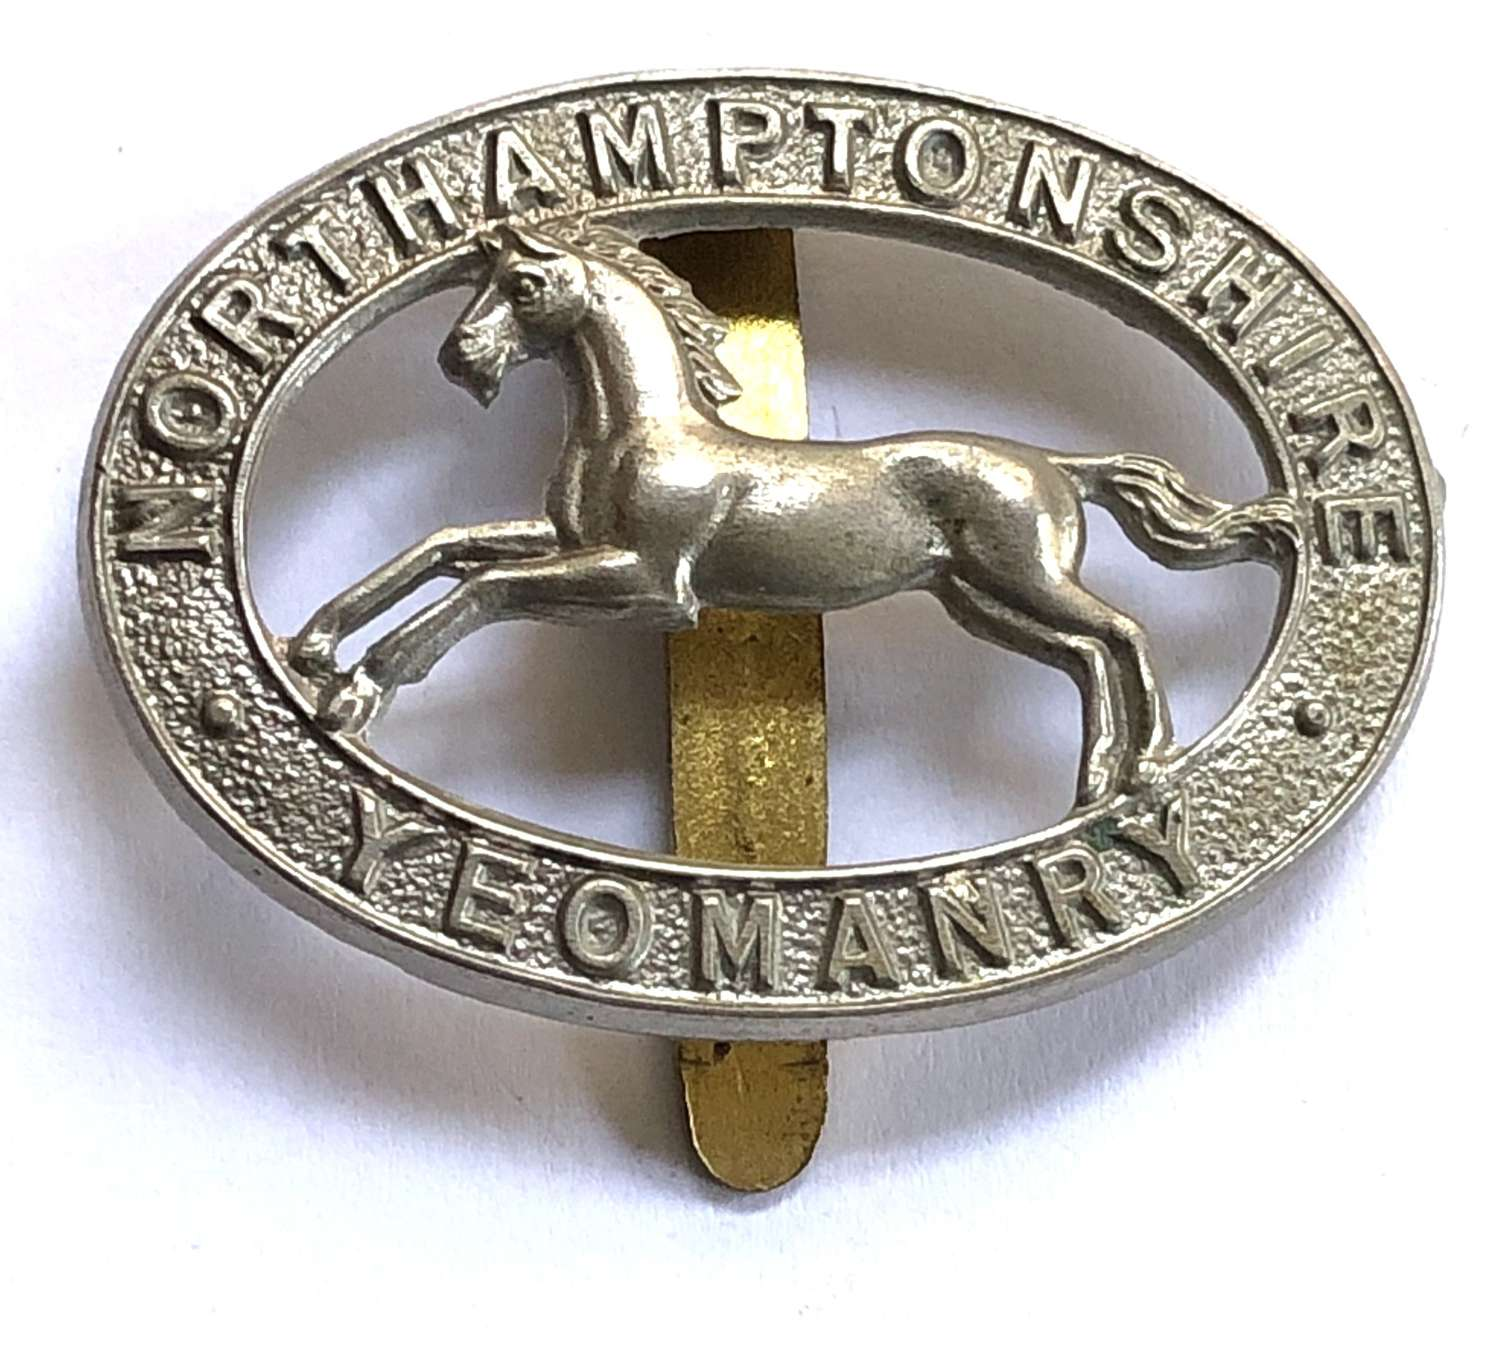 2nd Northamptonshire Yeomanry OR's cap badge by Gaunt, London